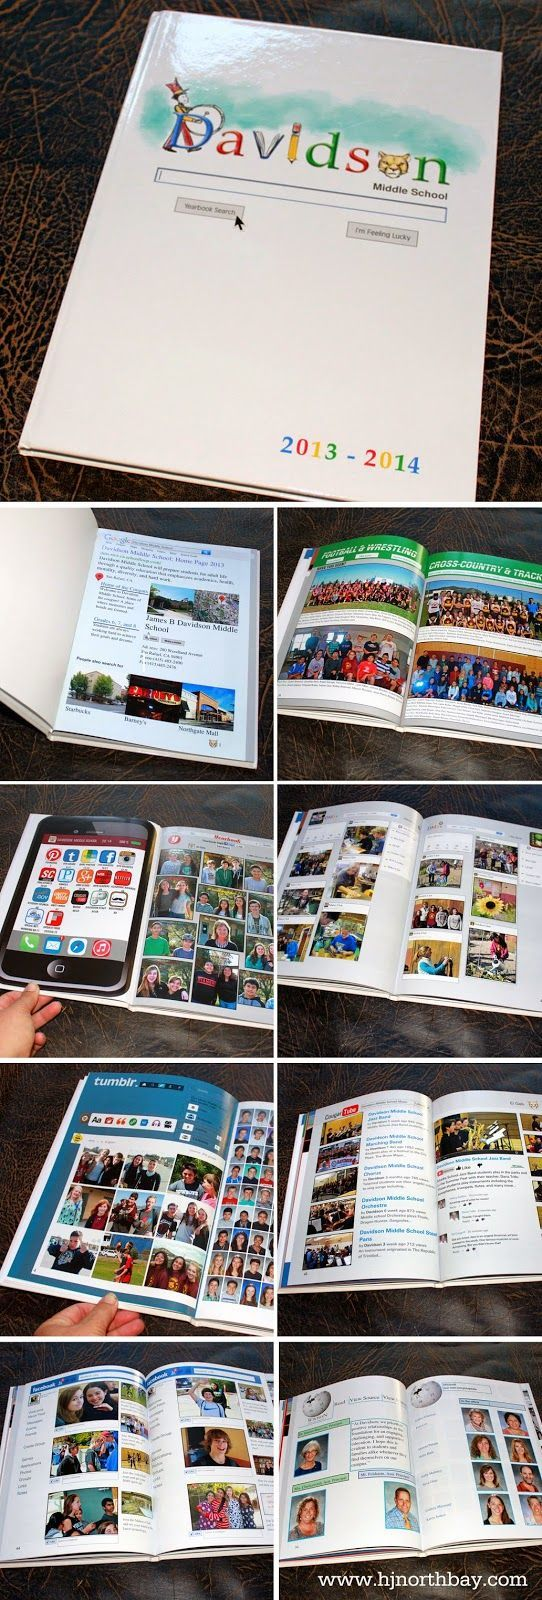 Google themes meme - Green Ipad Yearbook Aka Fossilbook Background Themes Of All The Most Popular Apps Of The Year Book Covers Pinterest Technology Technology Design And